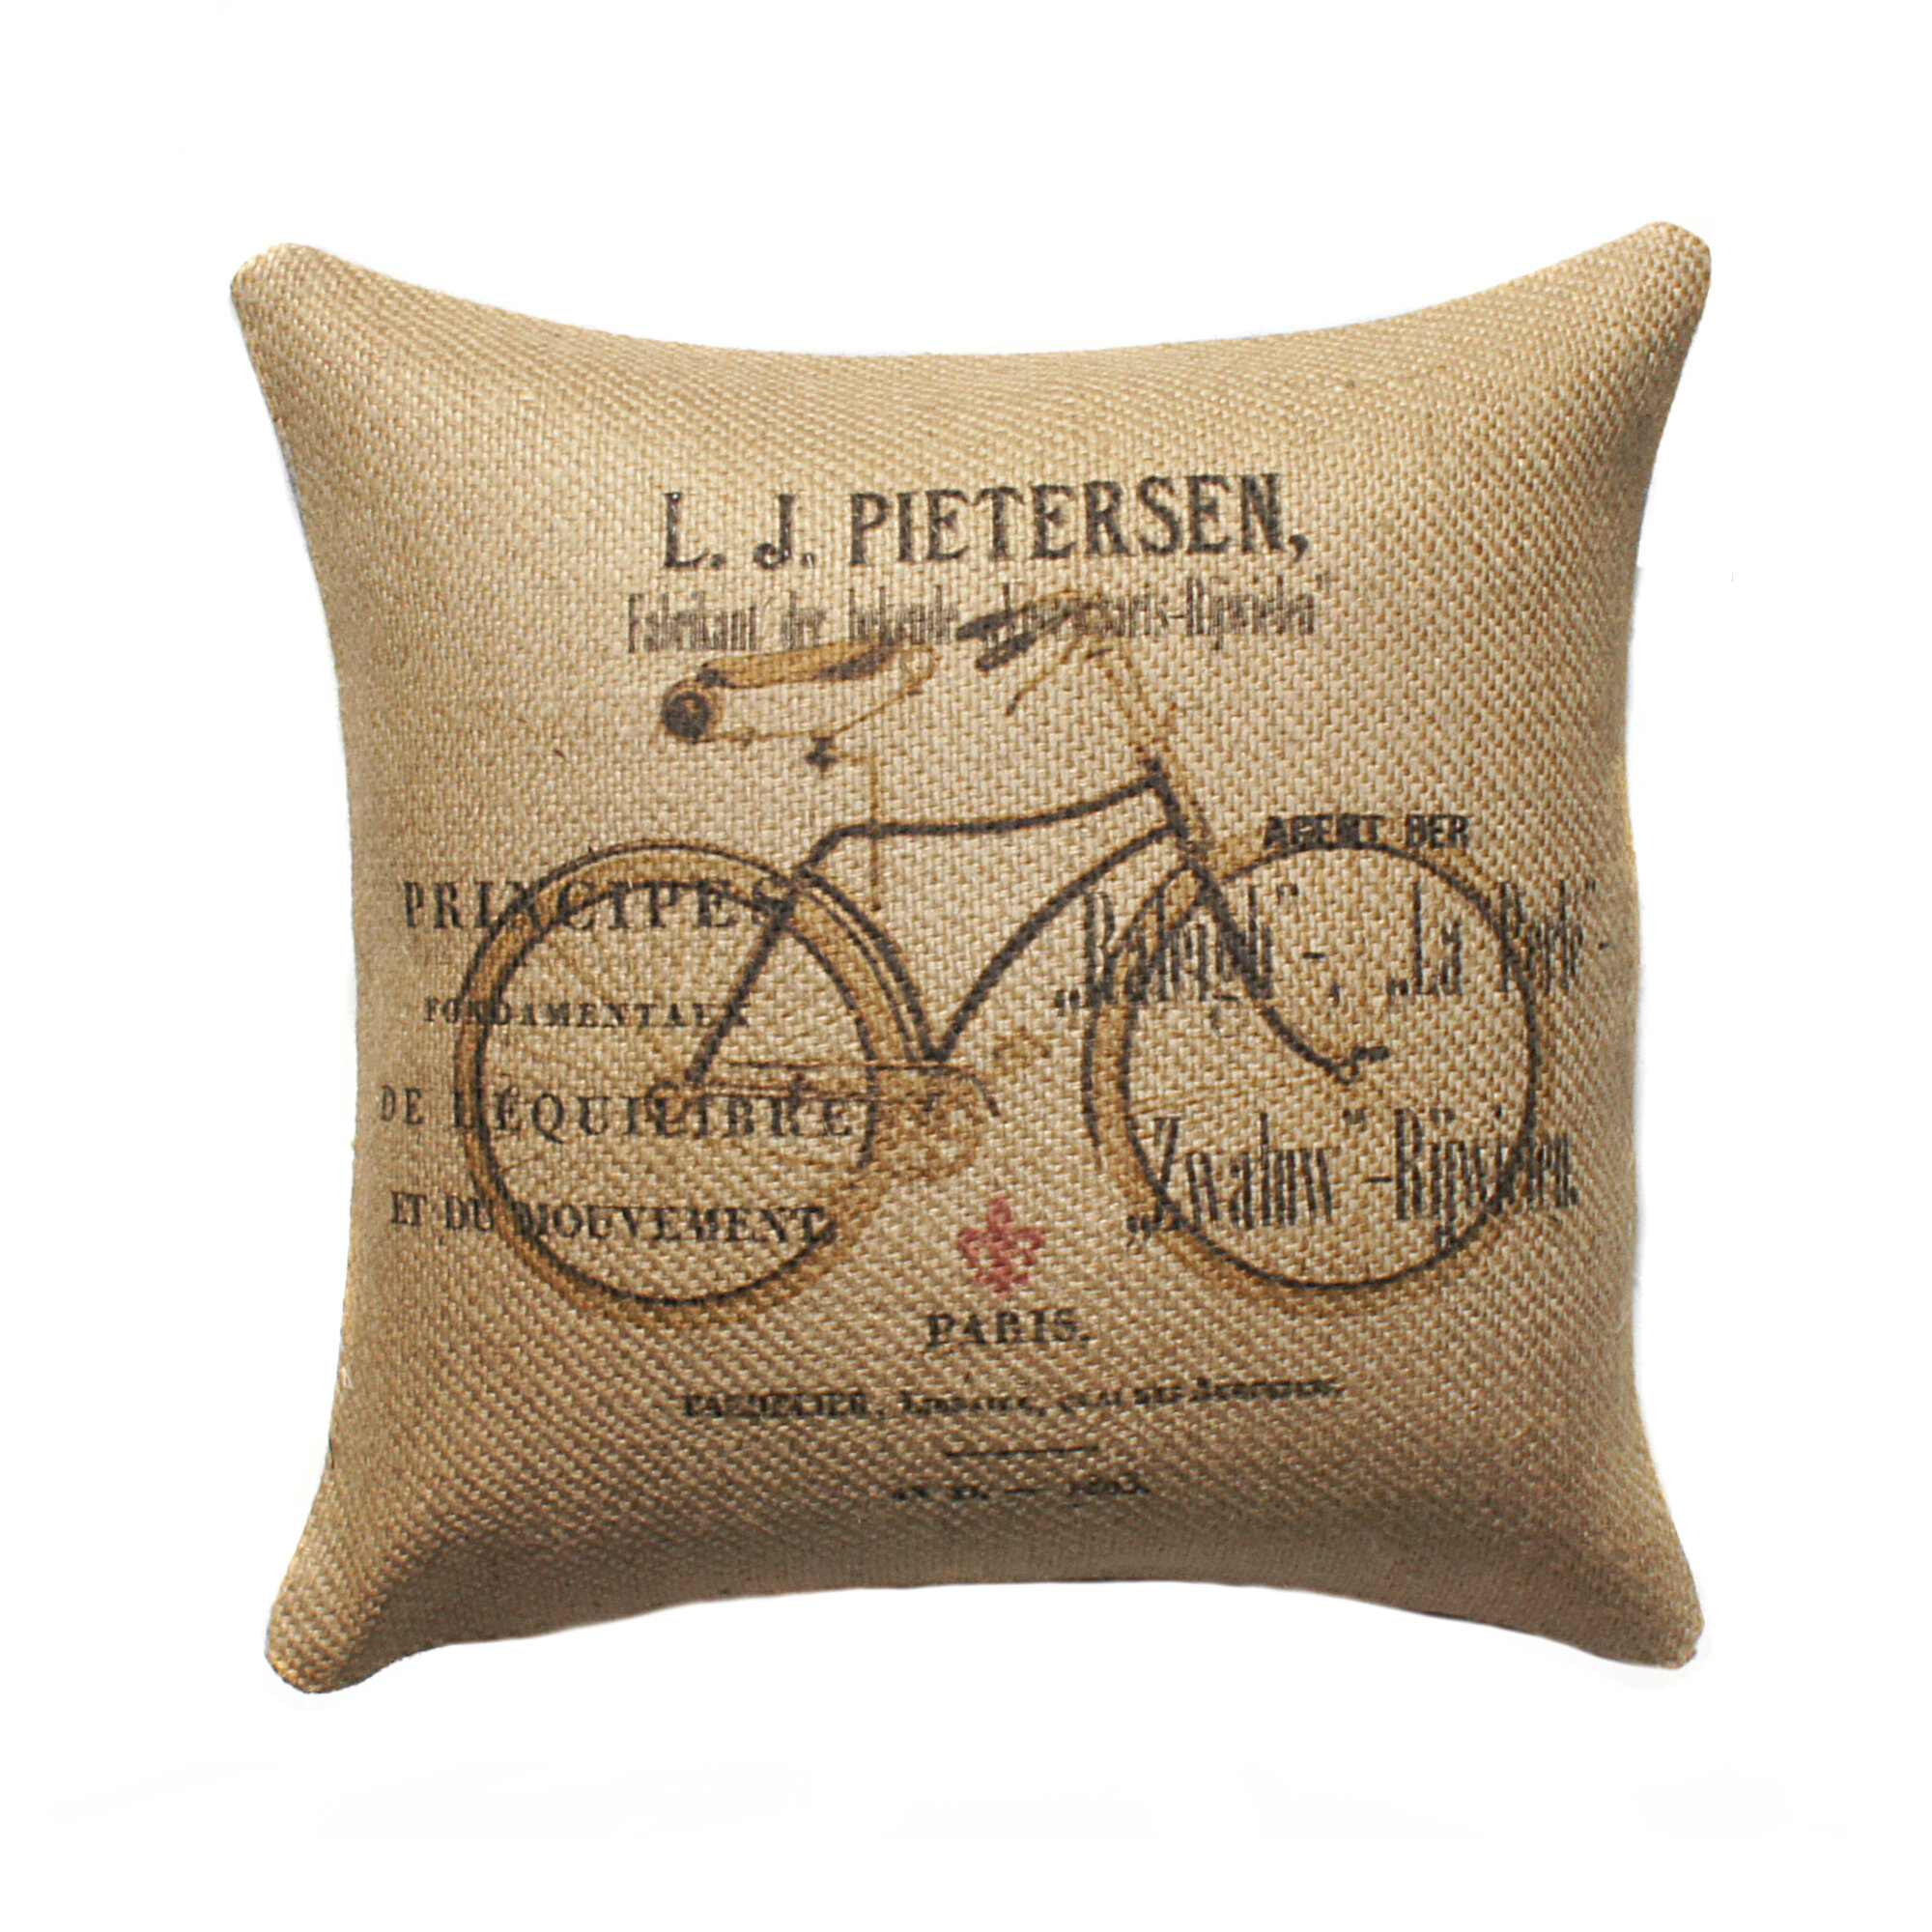 Thewatsonshop French Bike Burlap Throw Pillow  Ebay. Cool Chairs For Rooms. Cabin Decor Outlet. Ceramic Wall Decor Flower. Dining Room Hutch Ikea. Yard Decorations. Rack Room Shoes Printable Coupon. Round Dining Room Rugs. Cheap Weekly Room Rentals